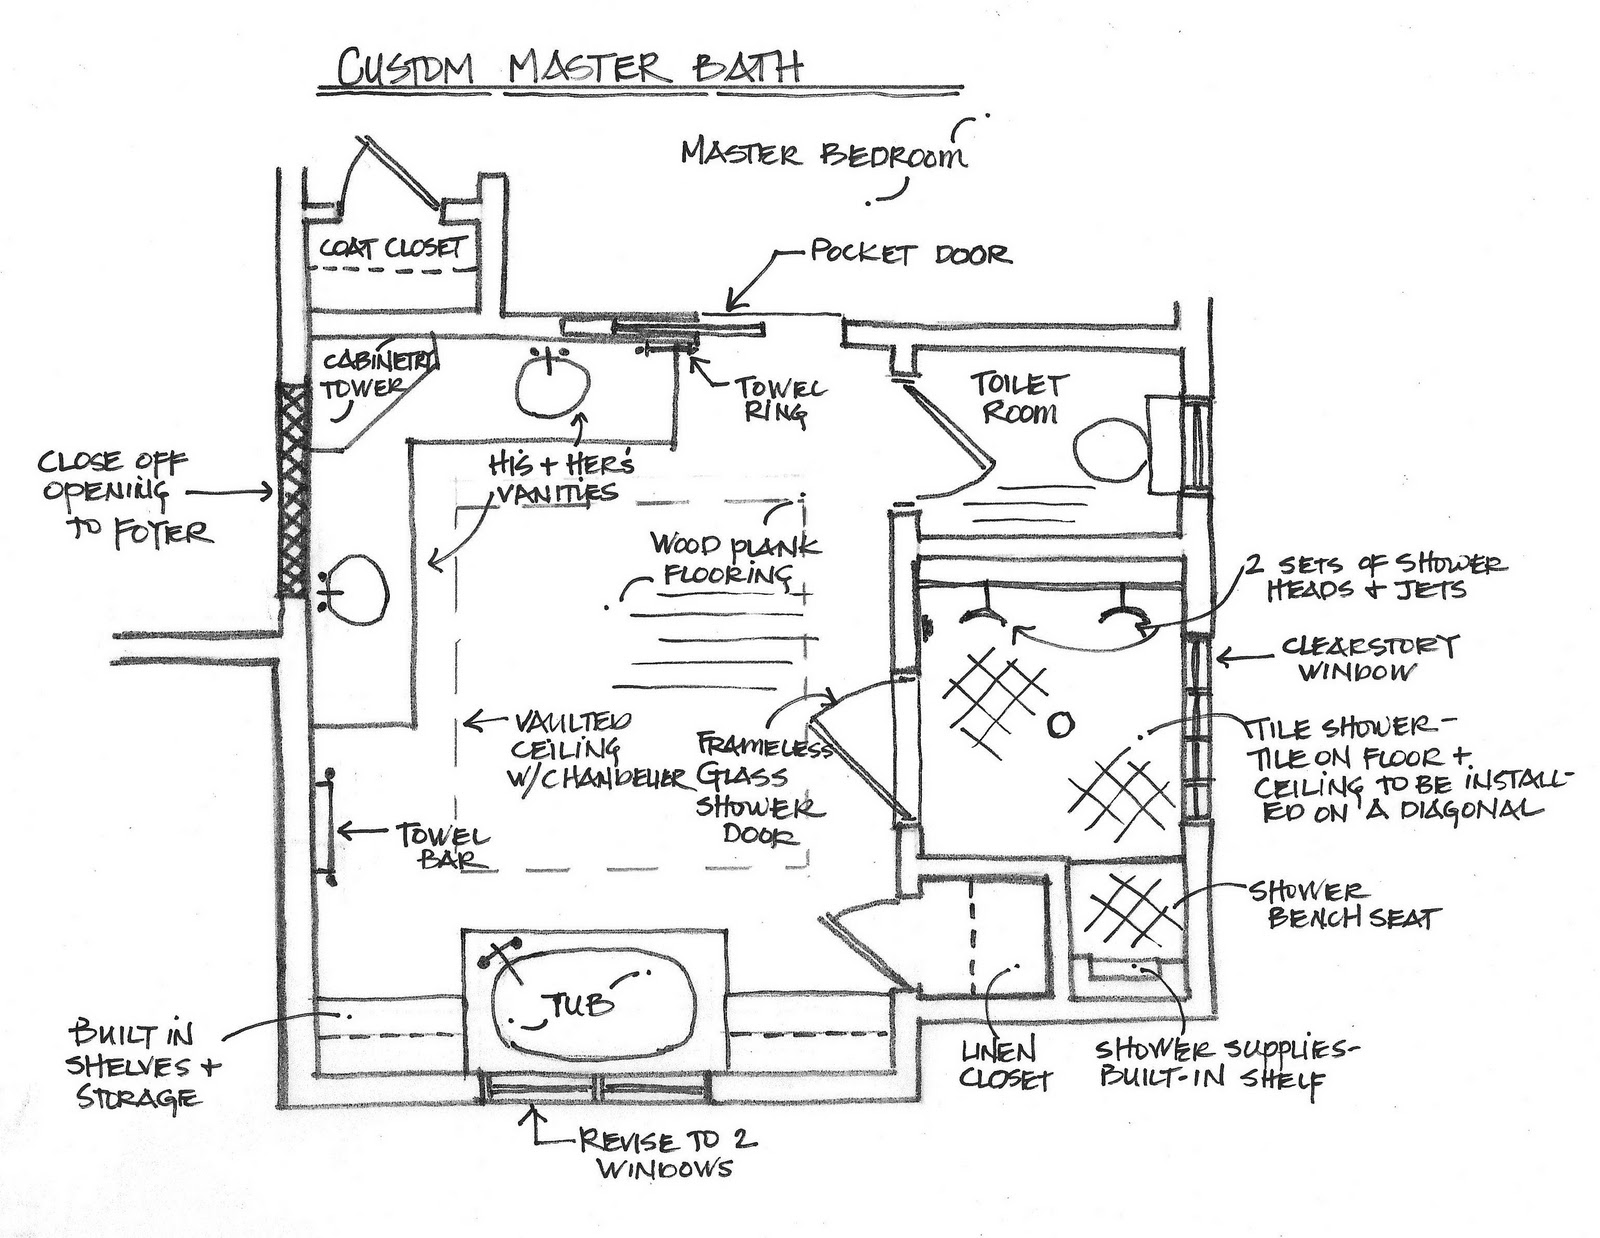 Master bathroom layouts for small spaces home decorating for Master bathroom layouts designs